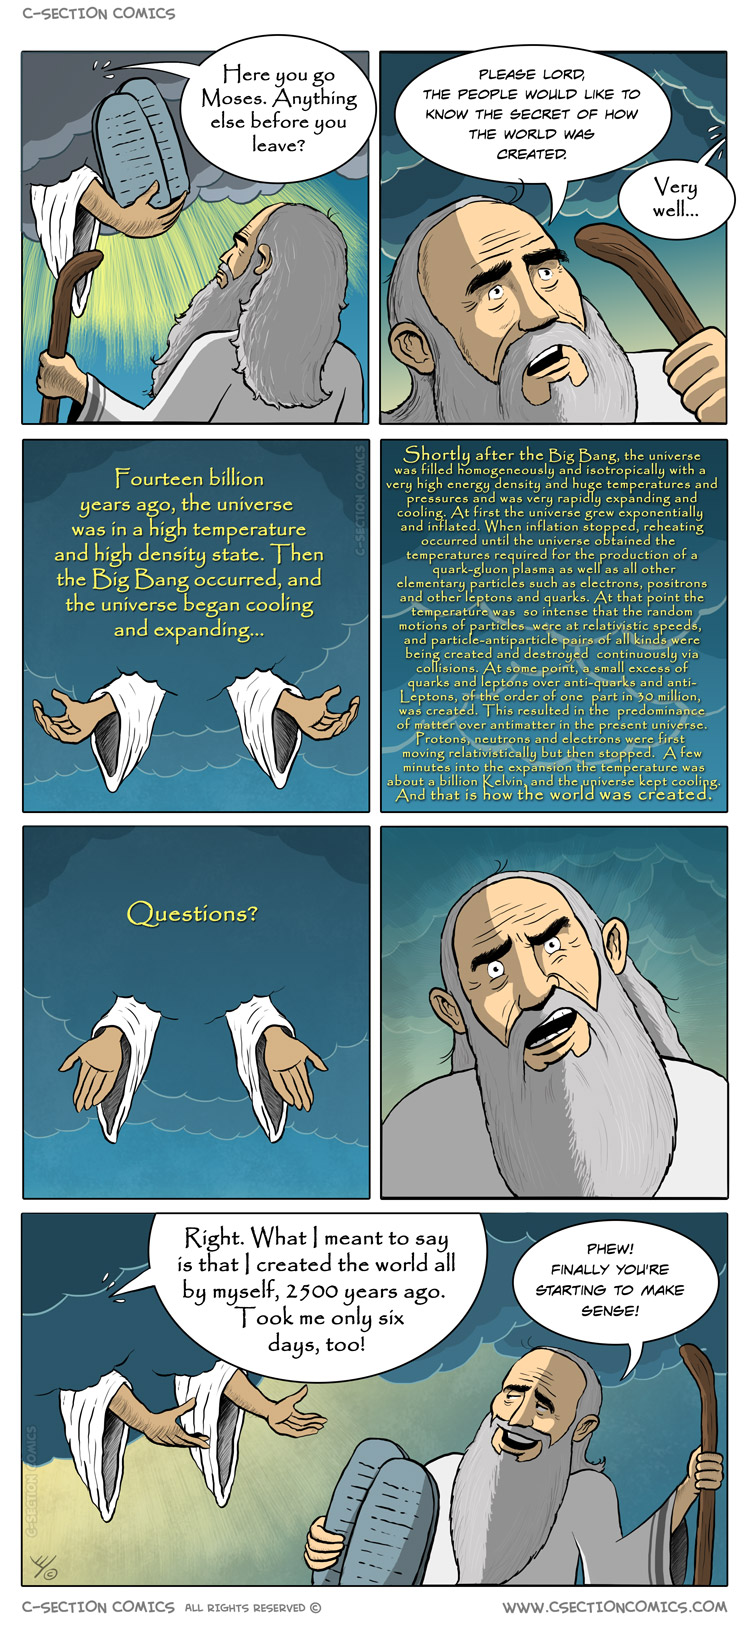 Moses Leans How God Created the World - by C-Section Comics